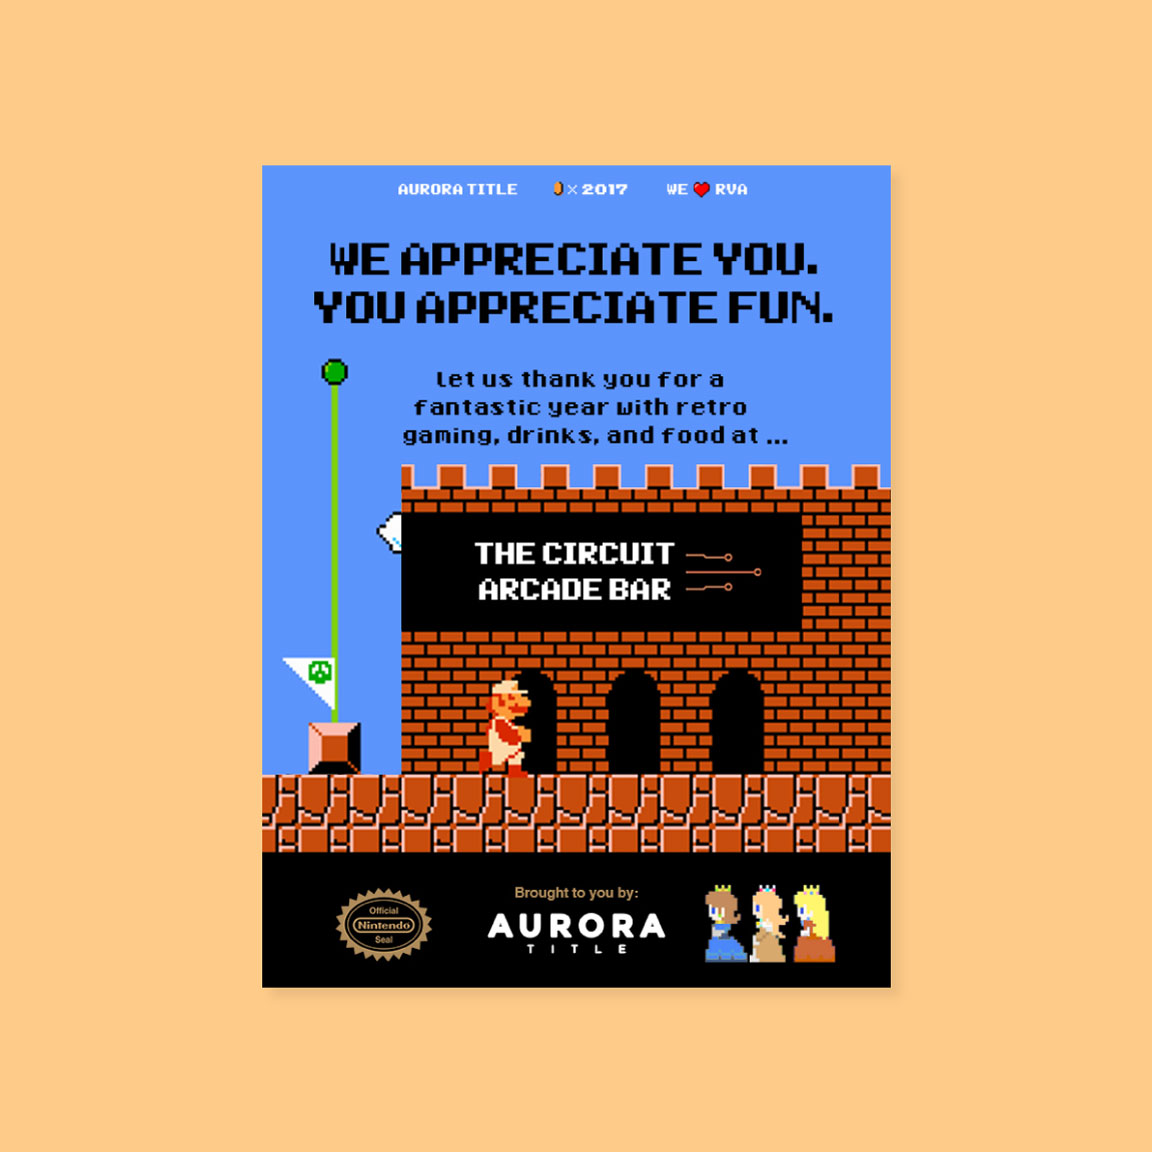 8-bit Mario themed poster for event at The Circuit Arcade Bar